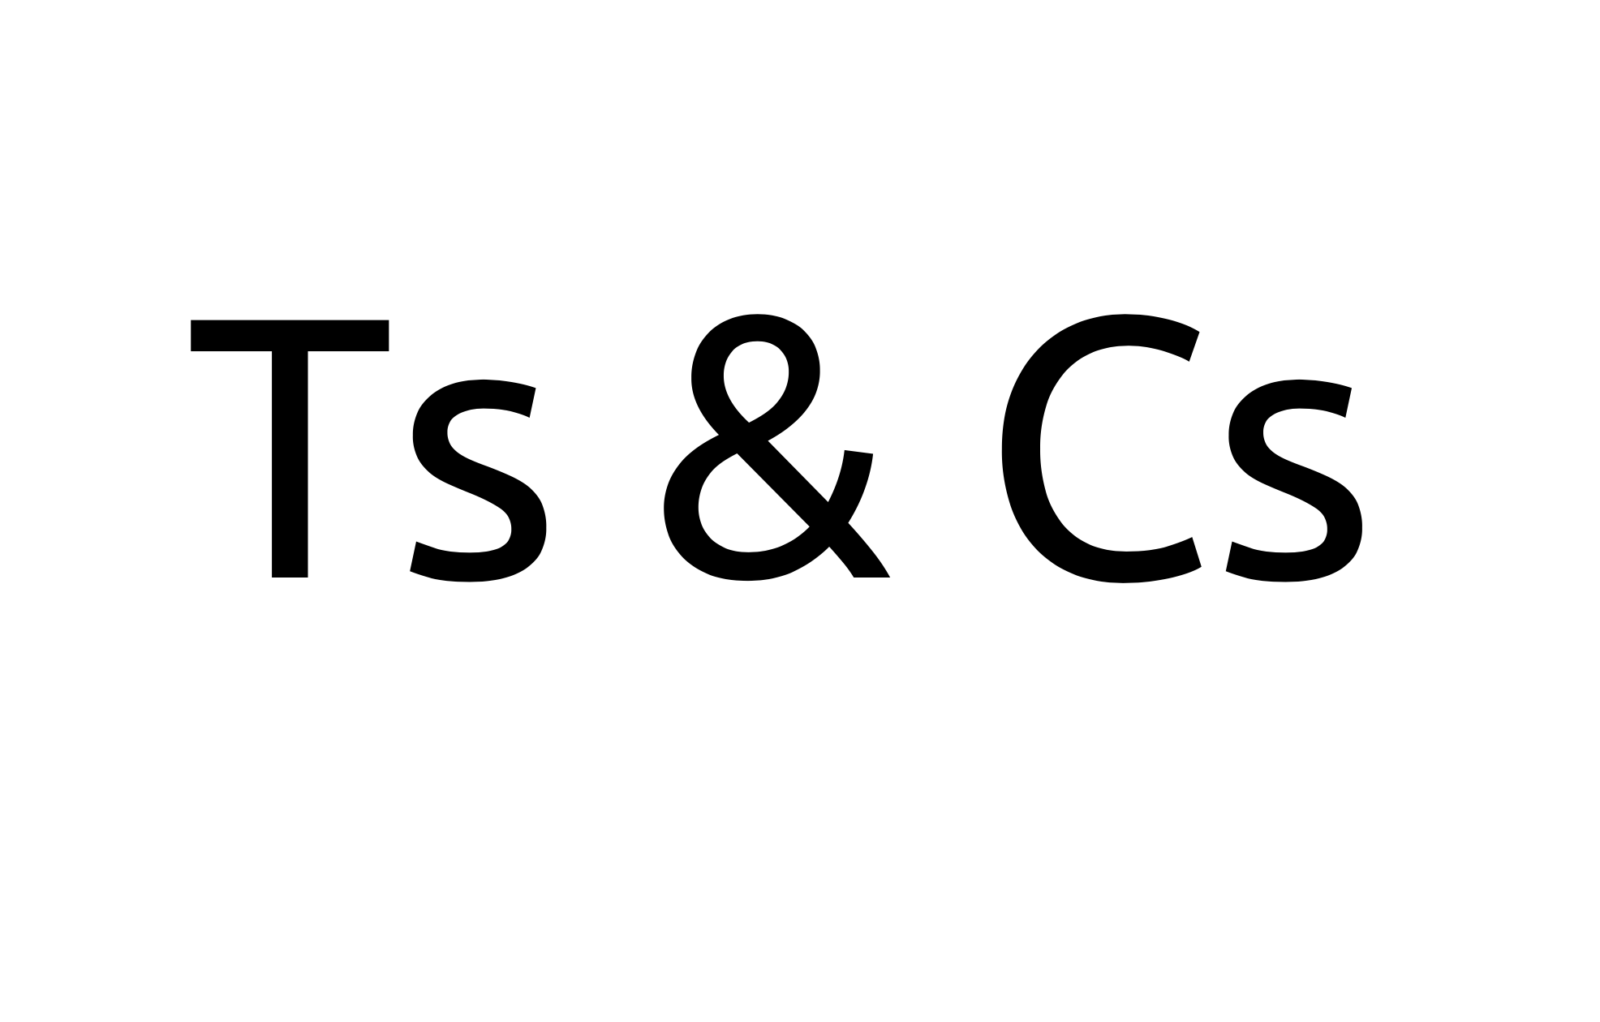 'One Day All Ts & Cs Will Be Made This Way…'